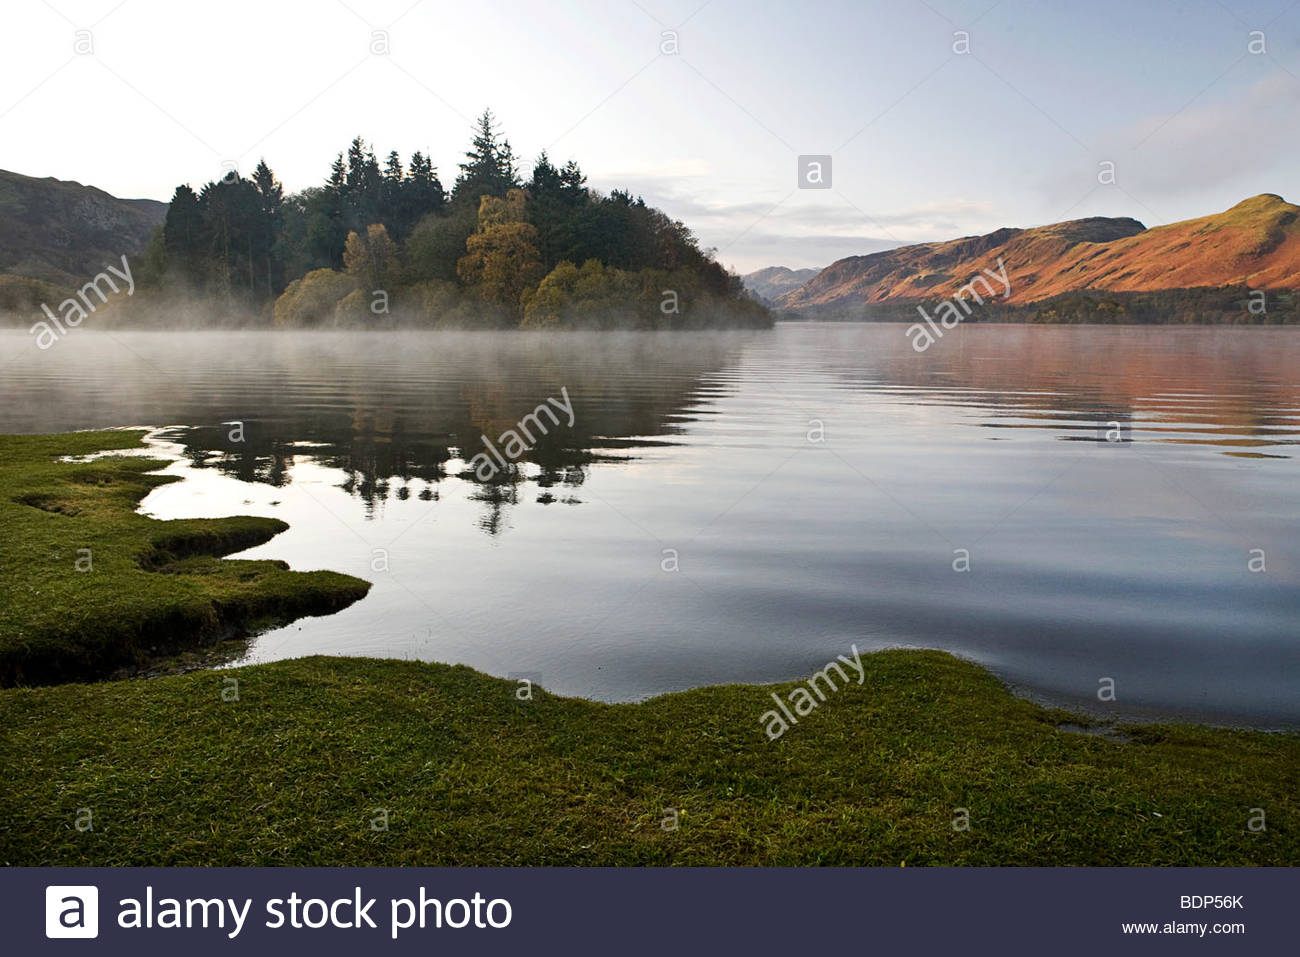 Landscape reflected in the rippling water of a lake - Stock Image